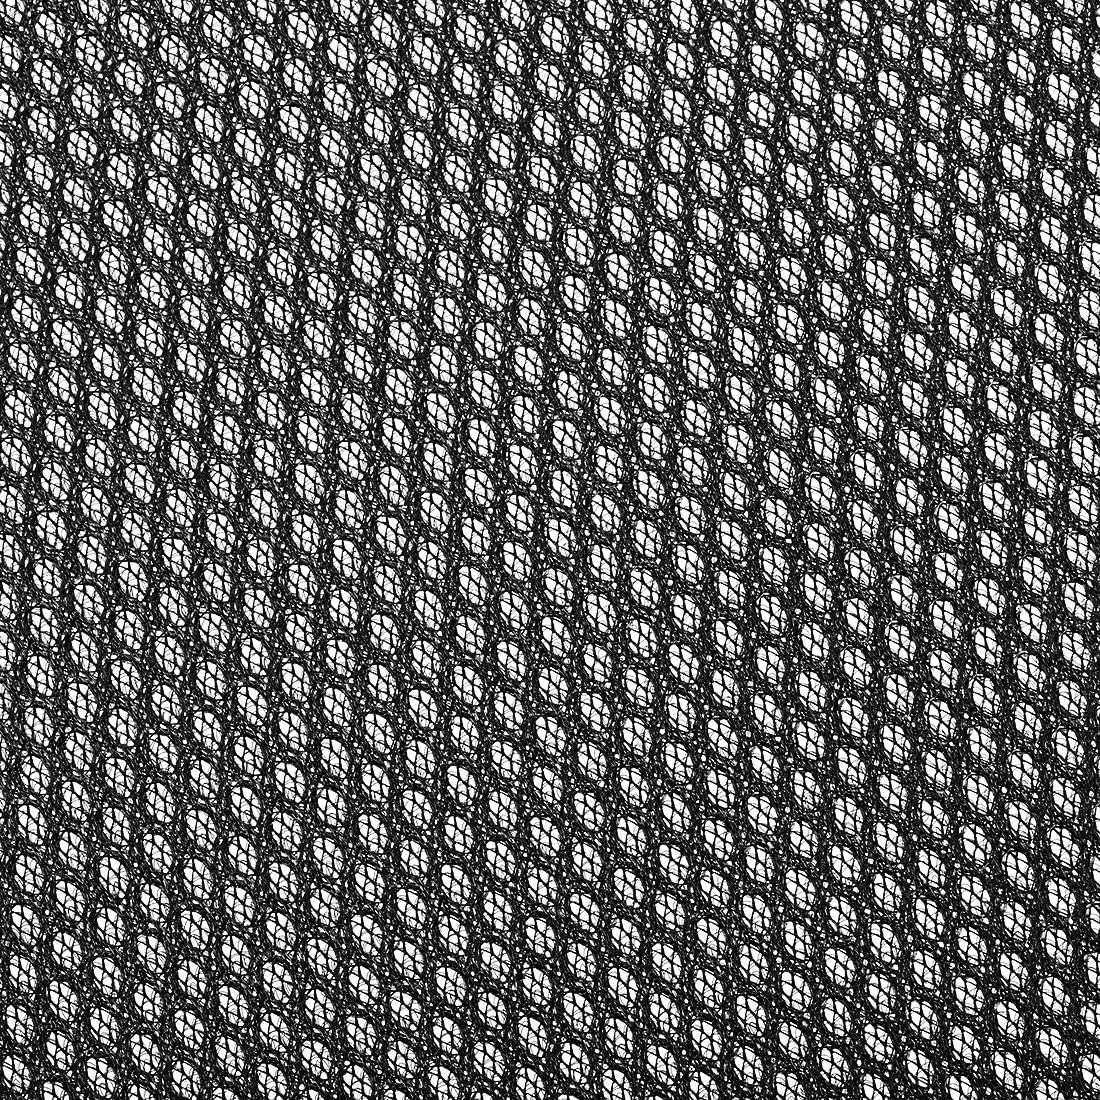 uxcell Speaker Grill Cloth 1x1.45 Meters 39x57 Inch Polyester Fiber Dustproof Stereo Mesh Fabric for Repair DIY Black